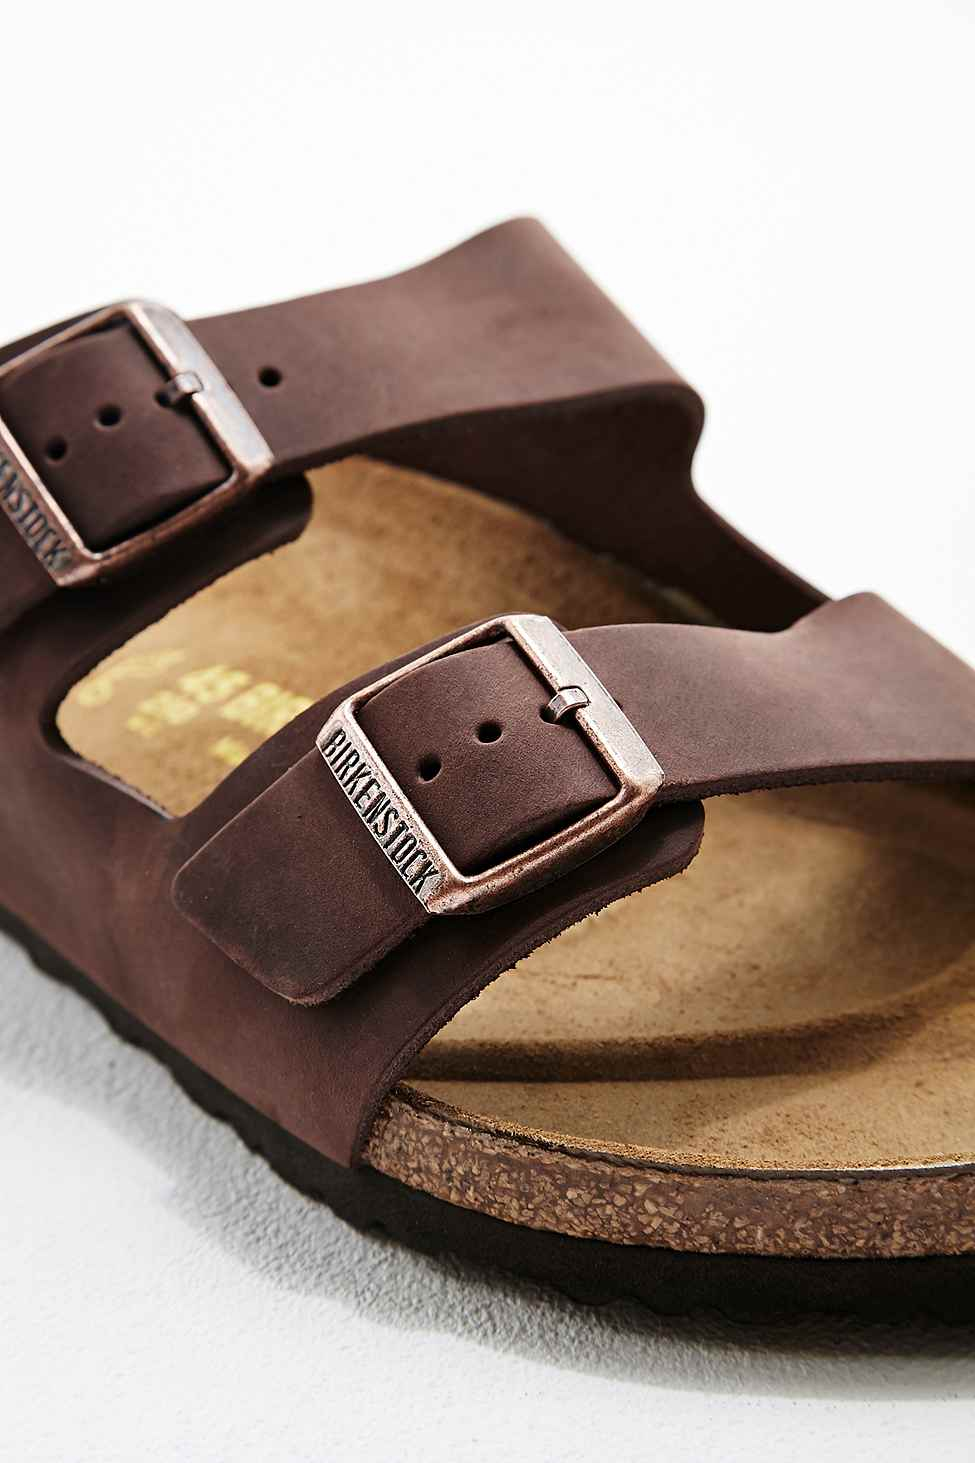 ed0de51ce07 Birkenstock Arizona Habana Oiled Leather Sandals in Chocolate in ...